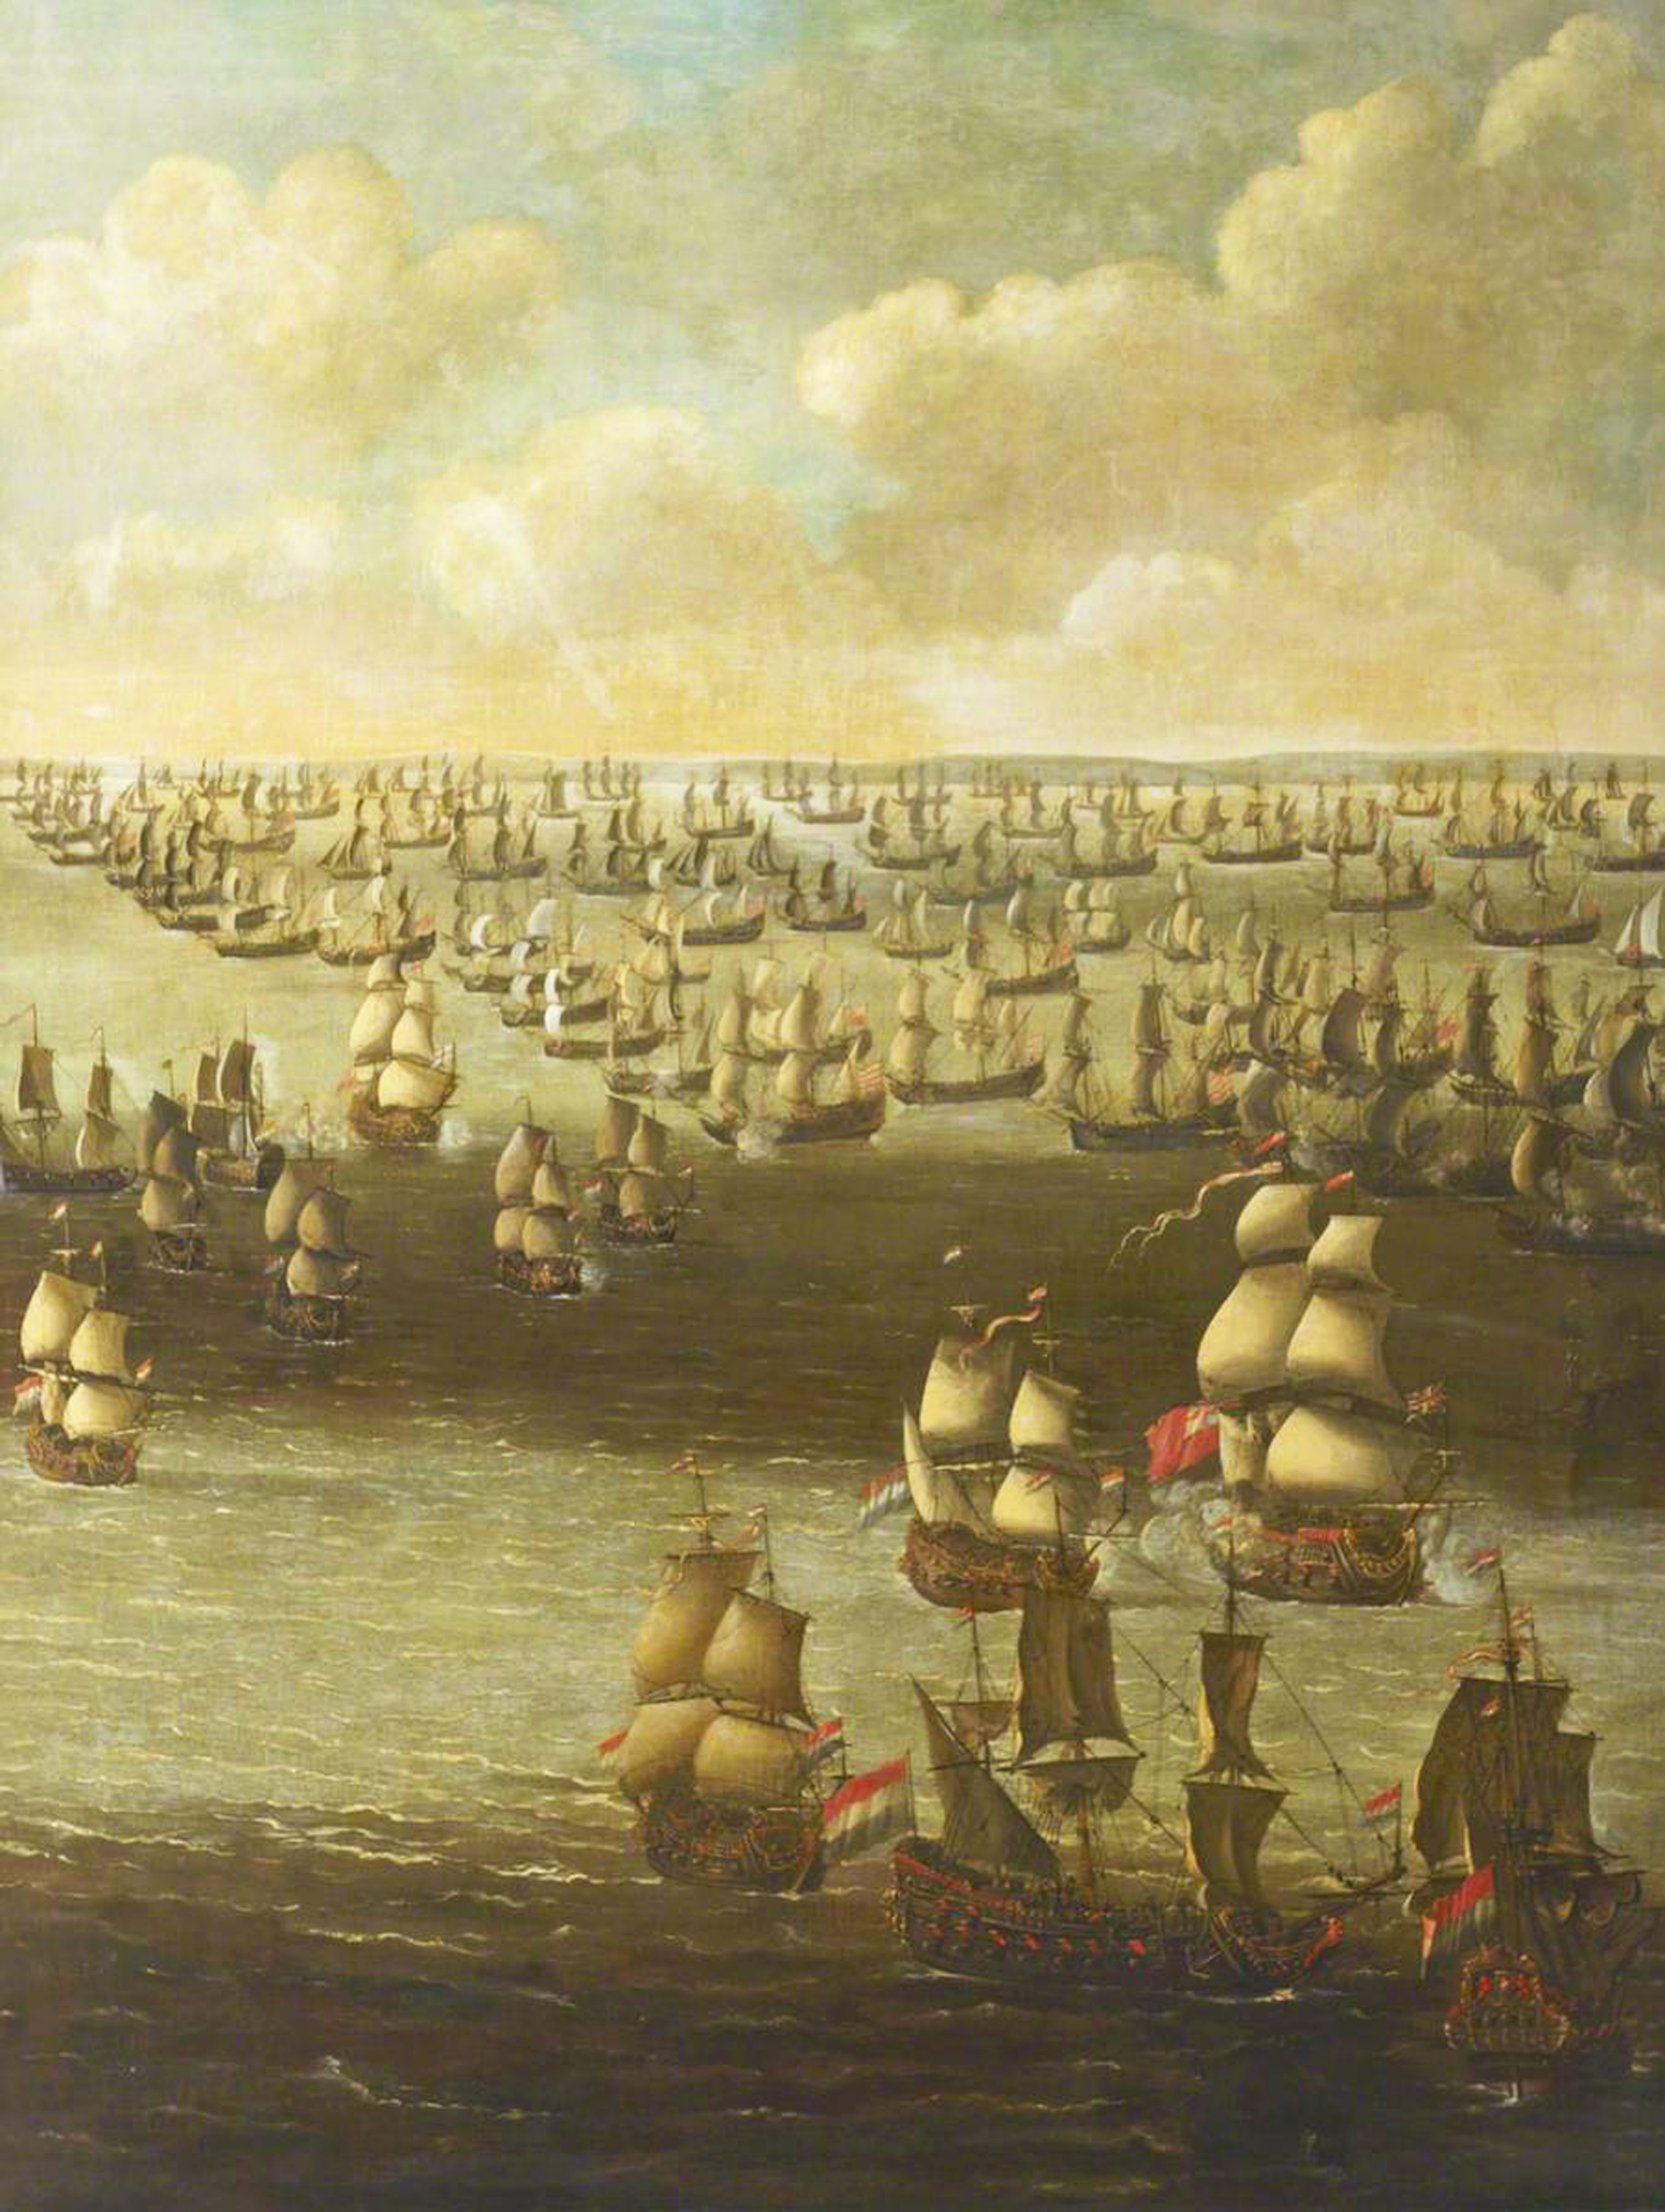 Schellinks, Daniel; HMS 'Tiger' Attacked by Eight Dutch Privateers, 26 August 1672; National Maritime Museum; http://www.artuk.org/artworks/hms-tiger-attacked-by-eight-dutch-privateers-26-august-1672-175498